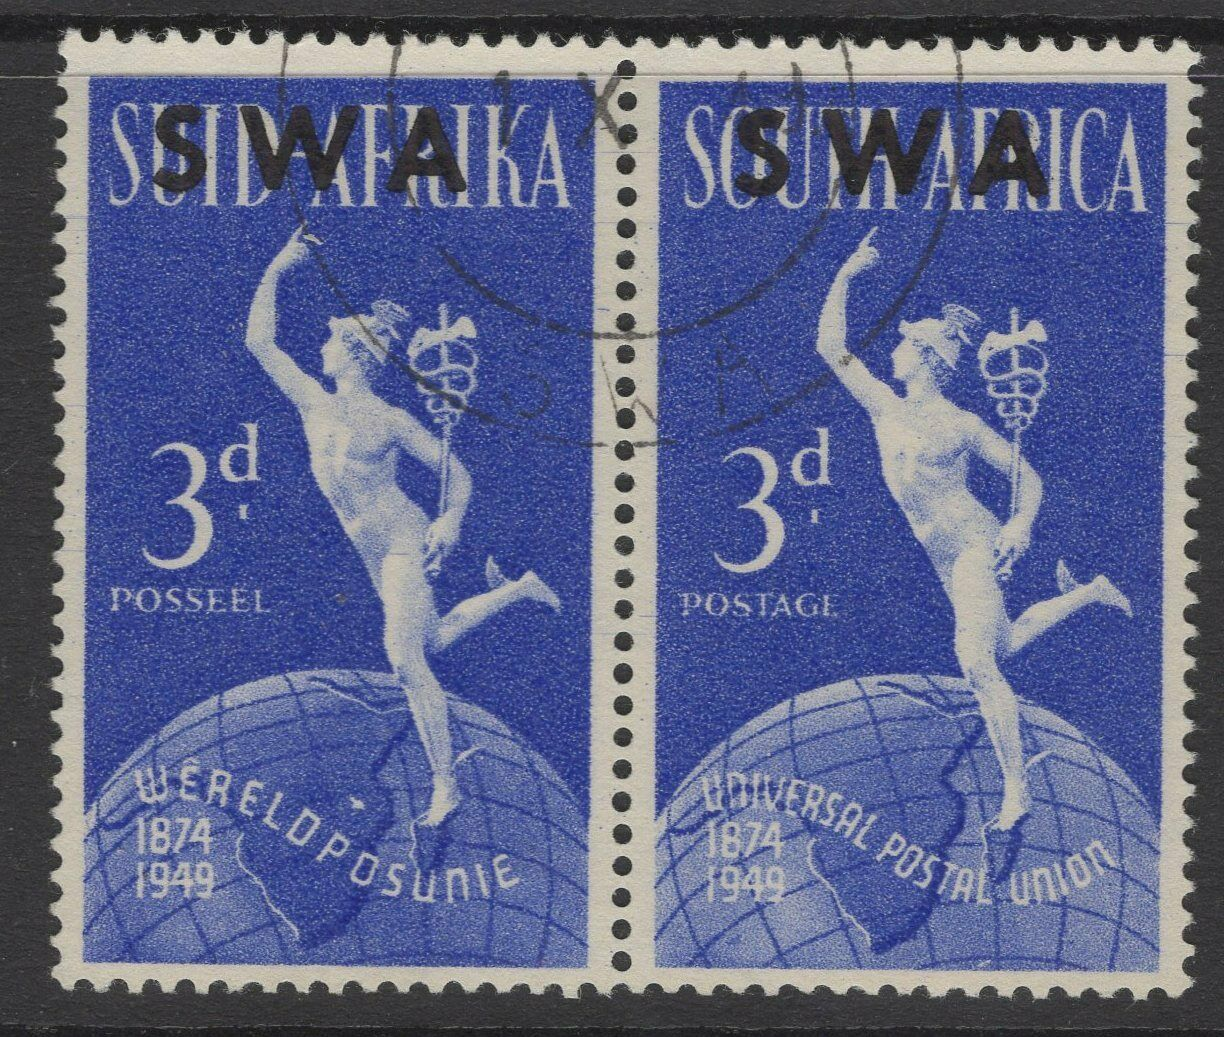 """SOUTH WEST AFRICA SG140b 1949 3d UPU SHOWING """"LAKE"""" IN EAST AFRICA FINE USED"""